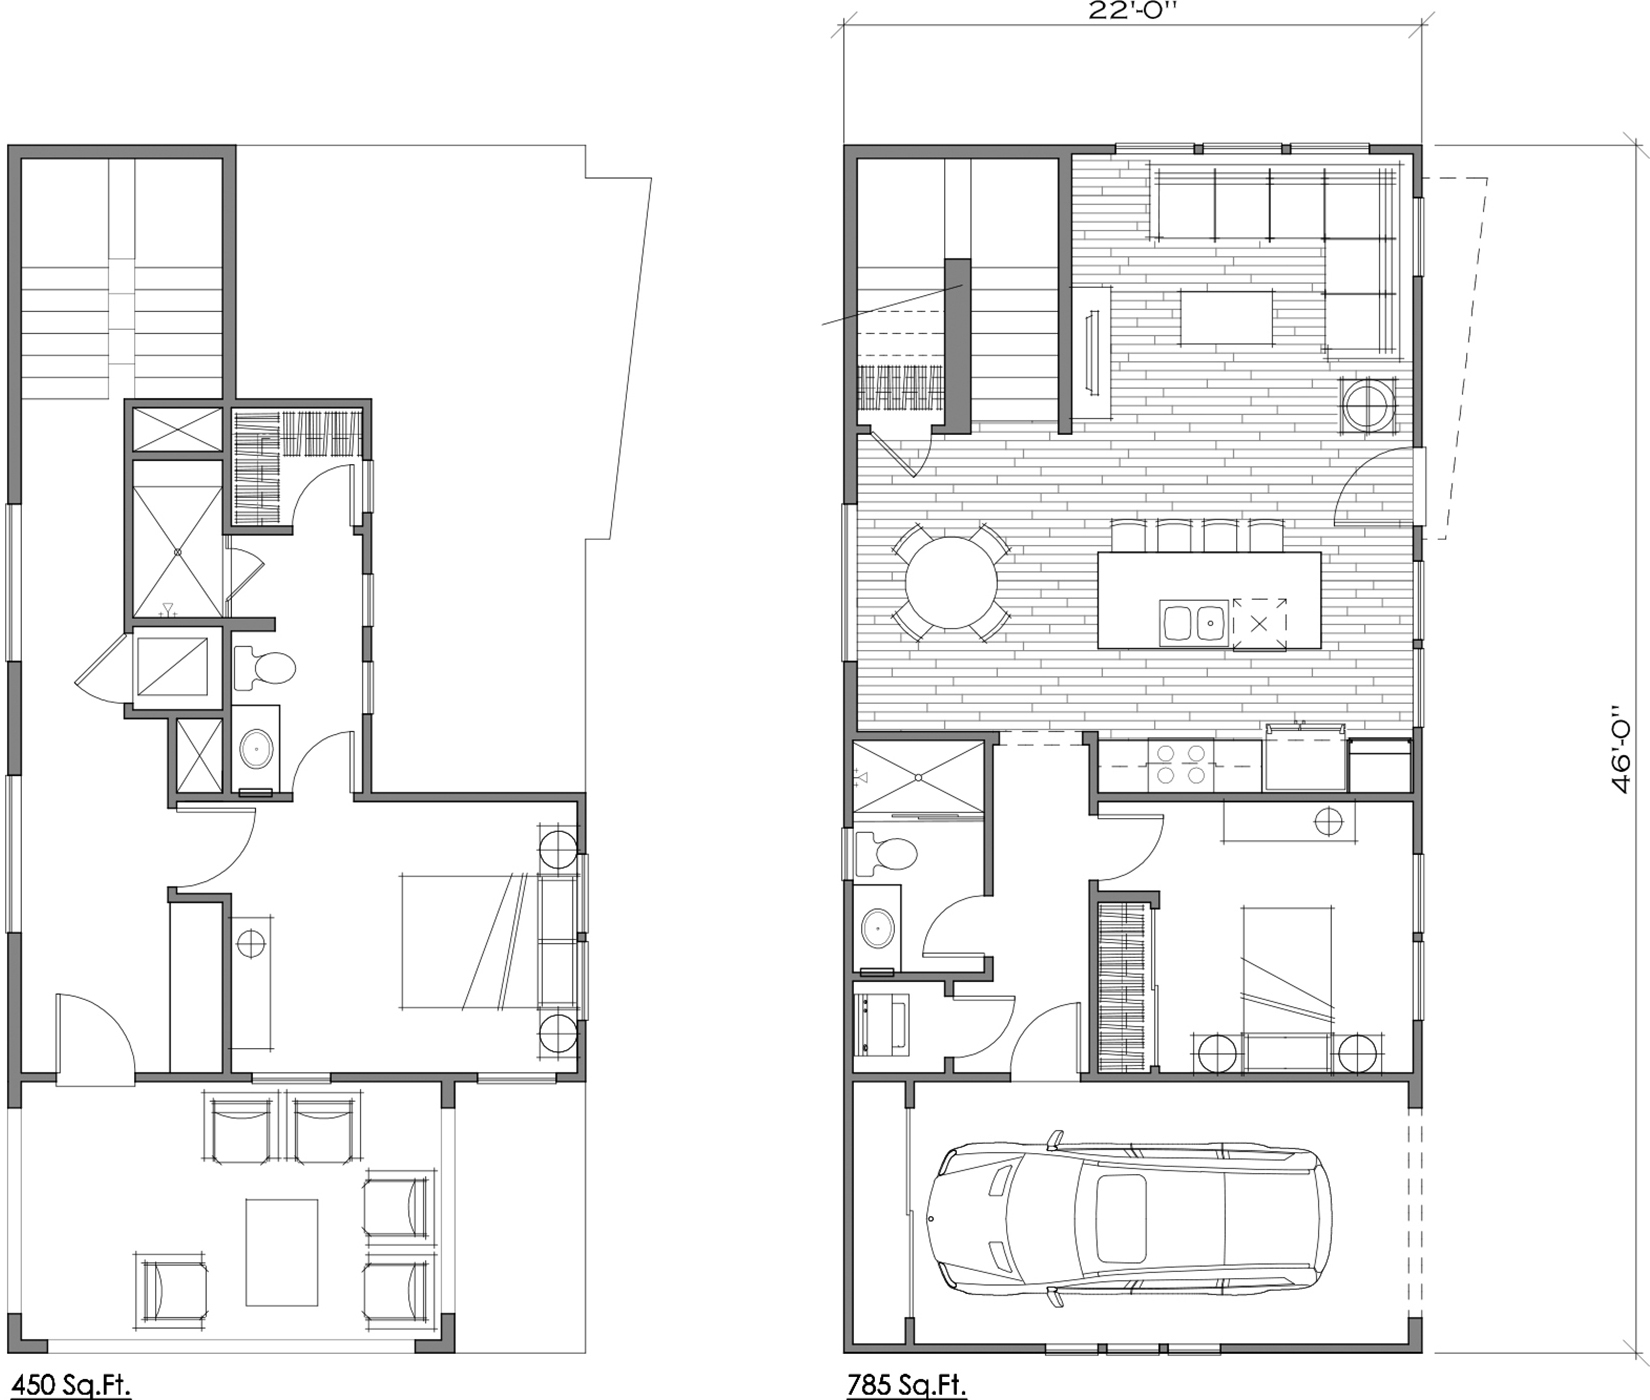 New Designs For Building Homes Within Reach